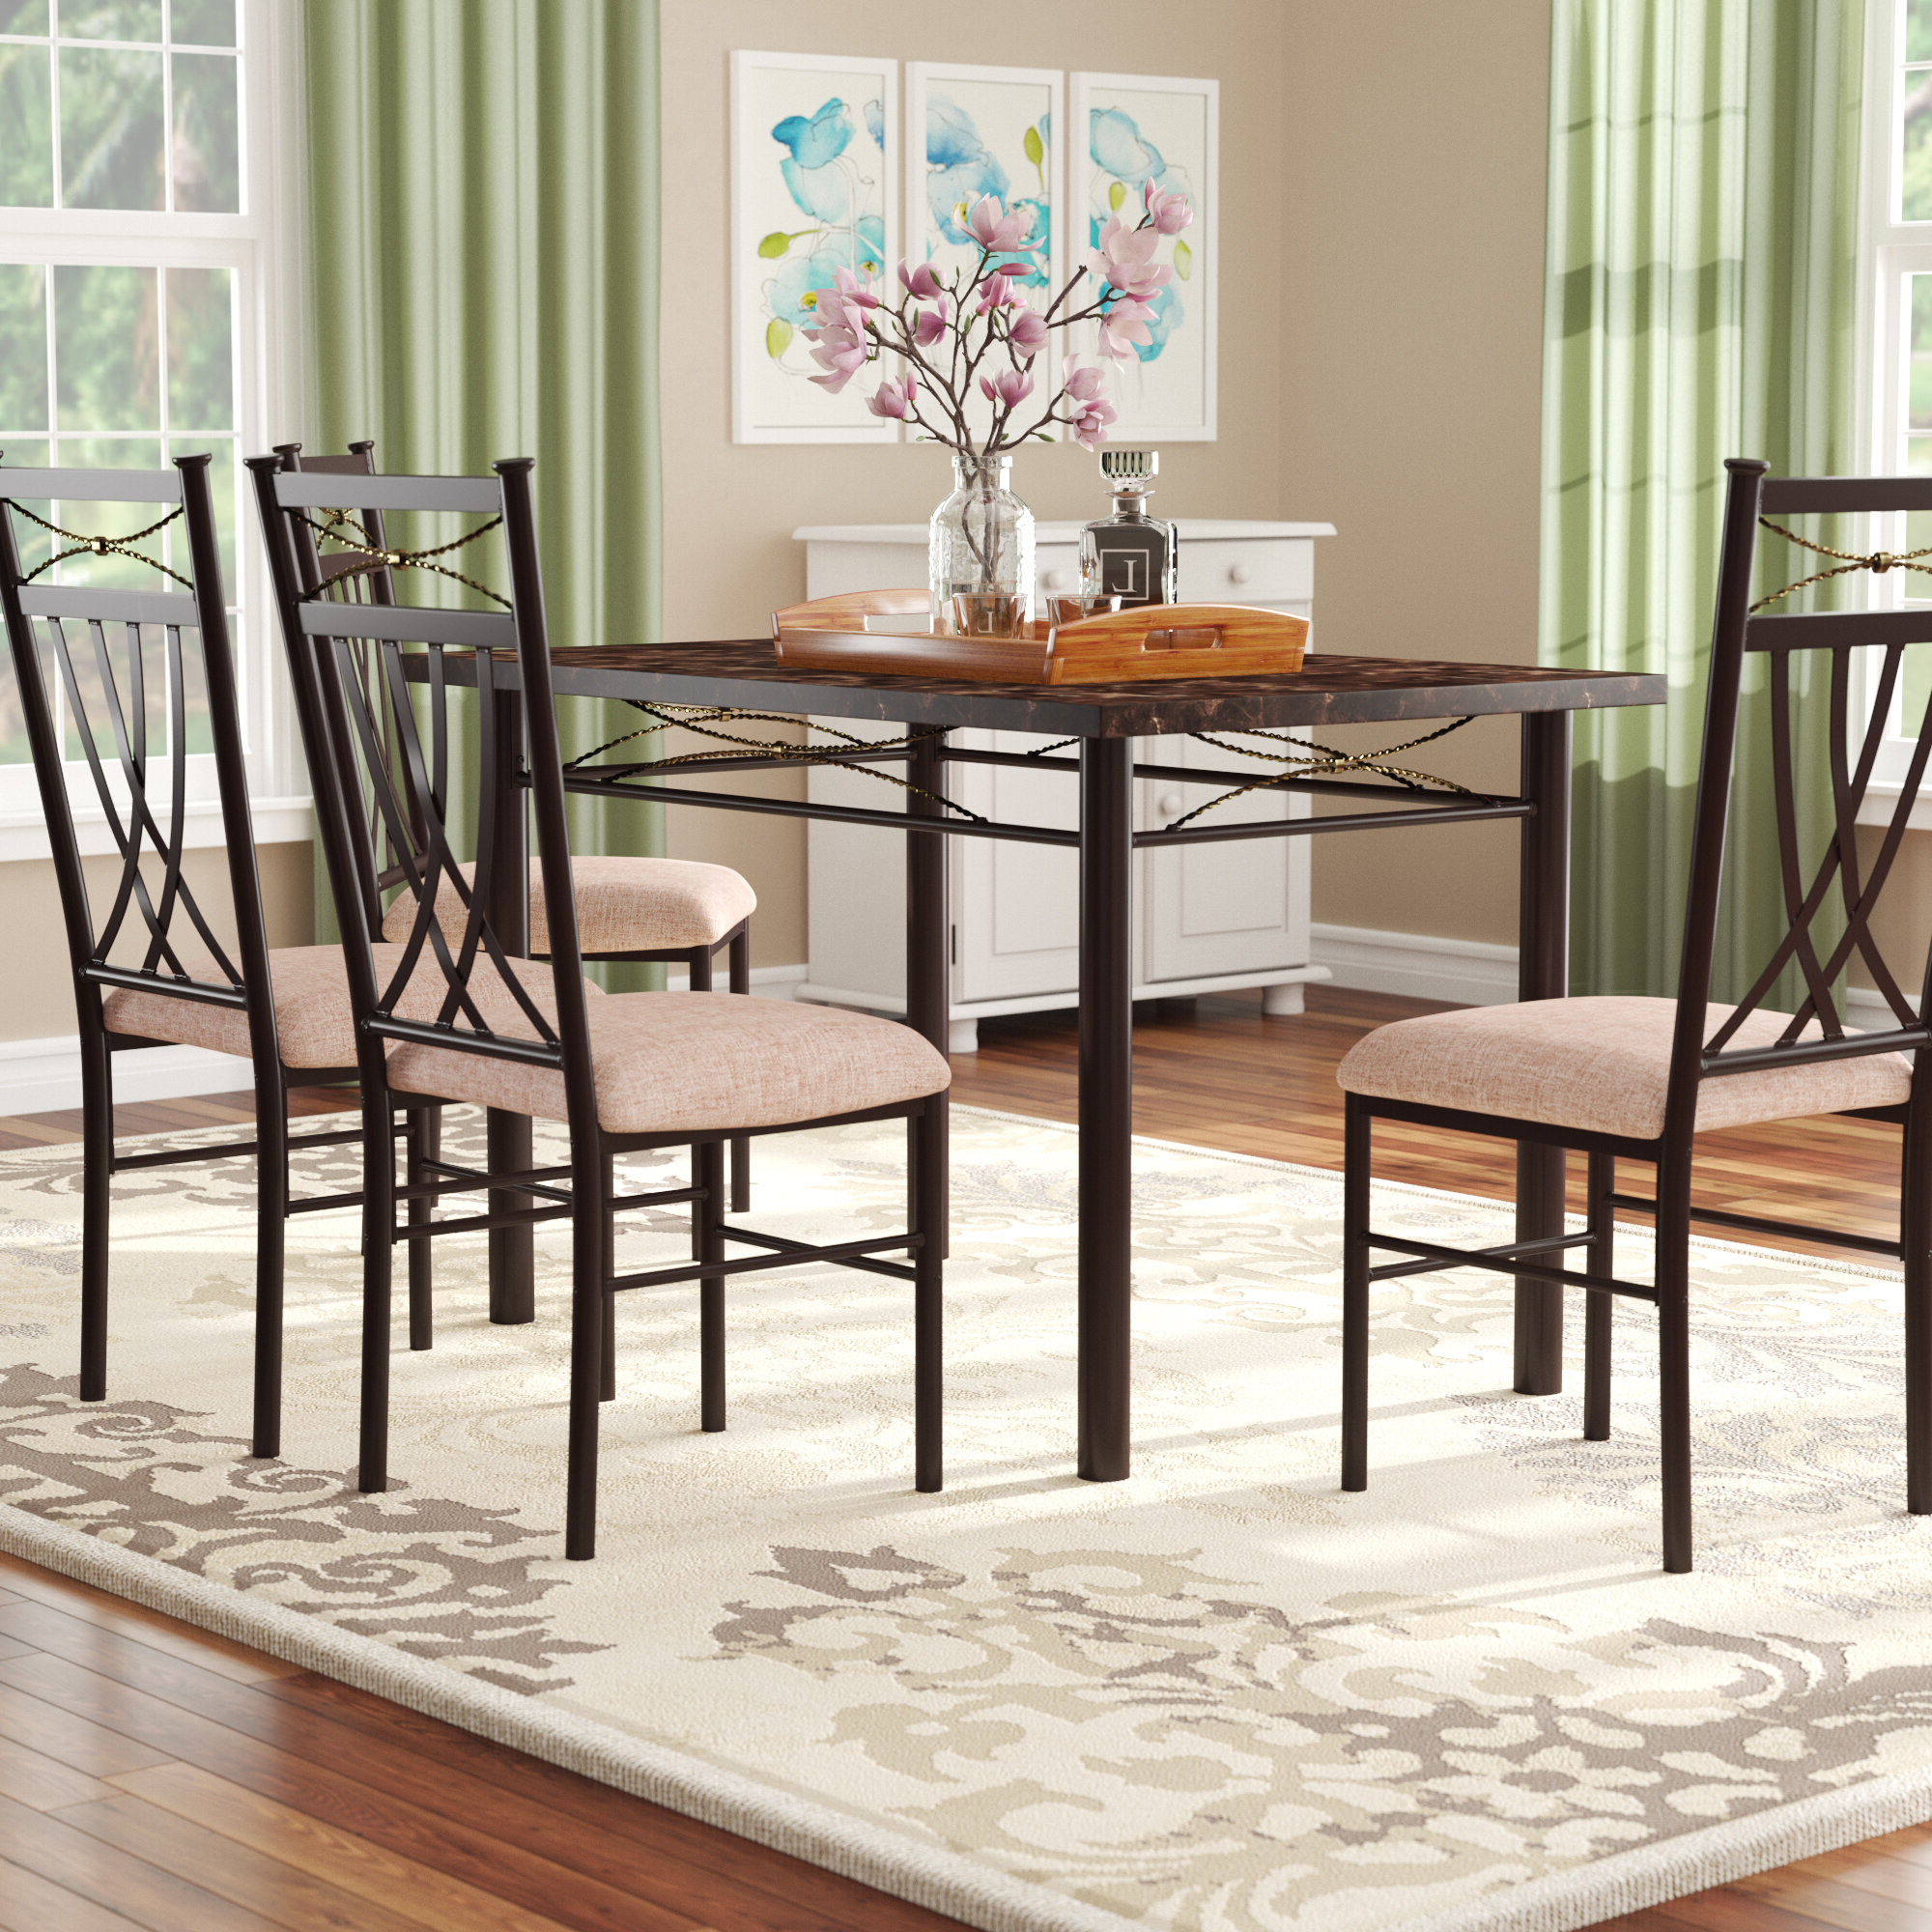 Jarrod 5 Piece Dining Sets Pertaining To Current Branden 5 Piece Dining Set (Gallery 10 of 20)